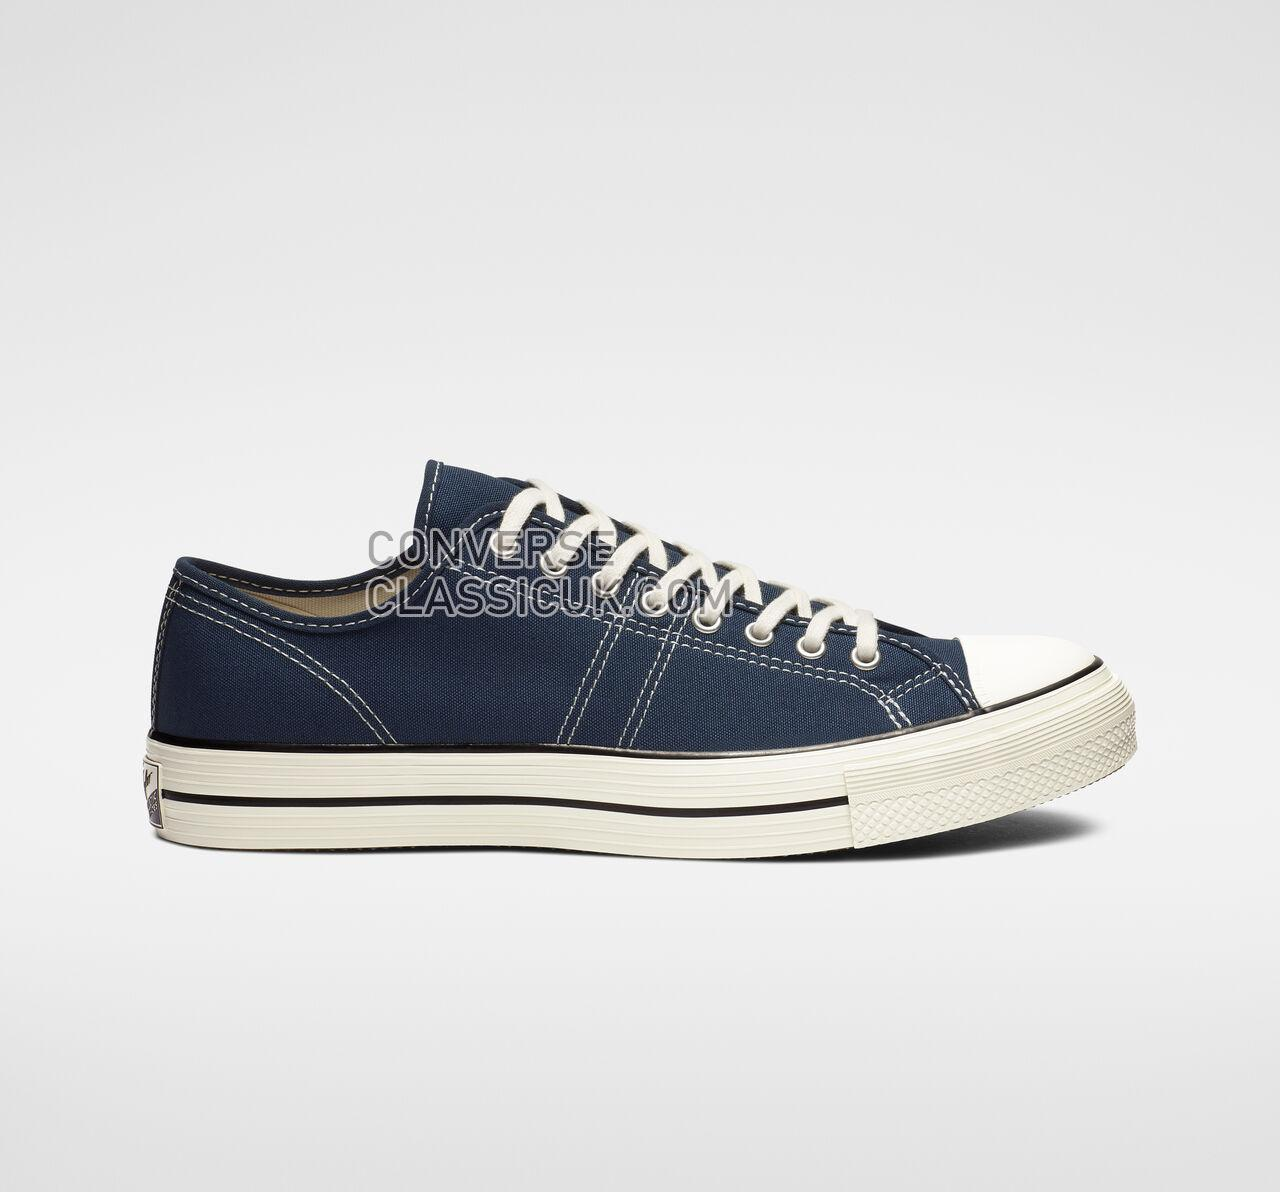 Converse Lucky Star Low Top Mens Womens Unisex 163323C Navy/Black/Egret Shoes